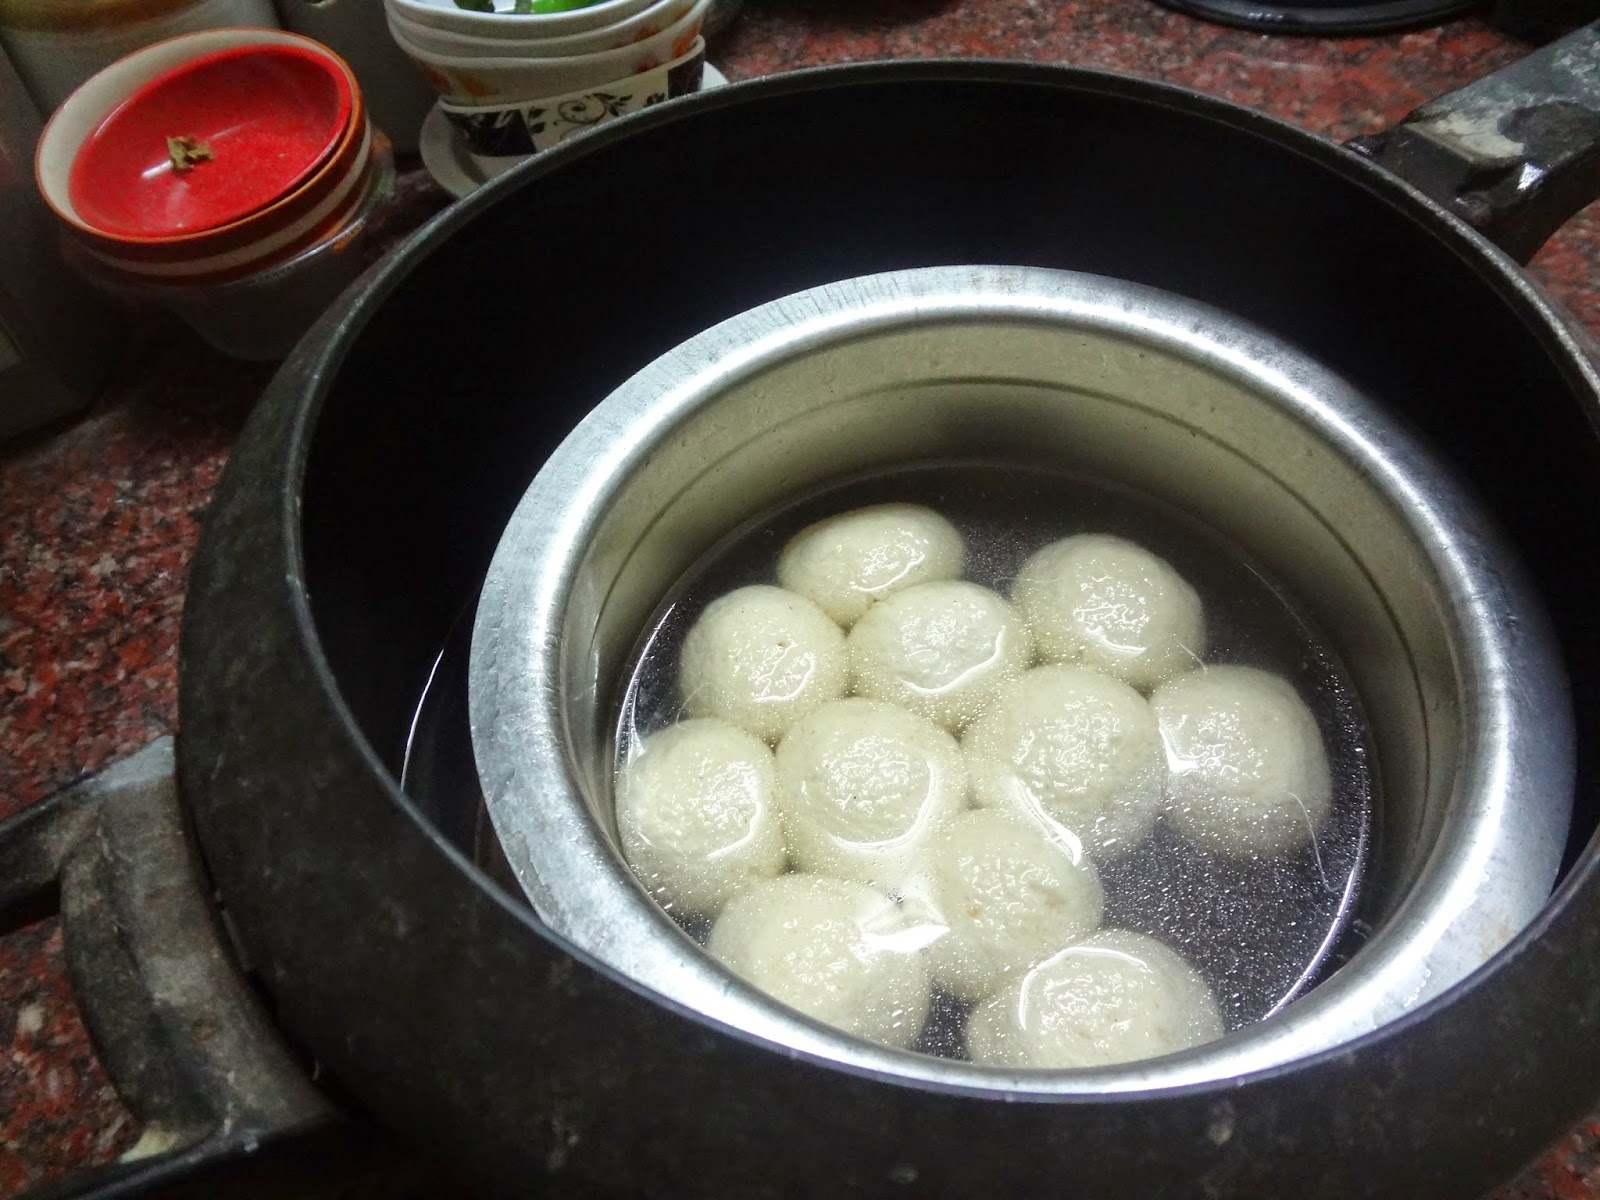 Rosgollas/Rasgullas made by pressure cooker method in sugar syrup